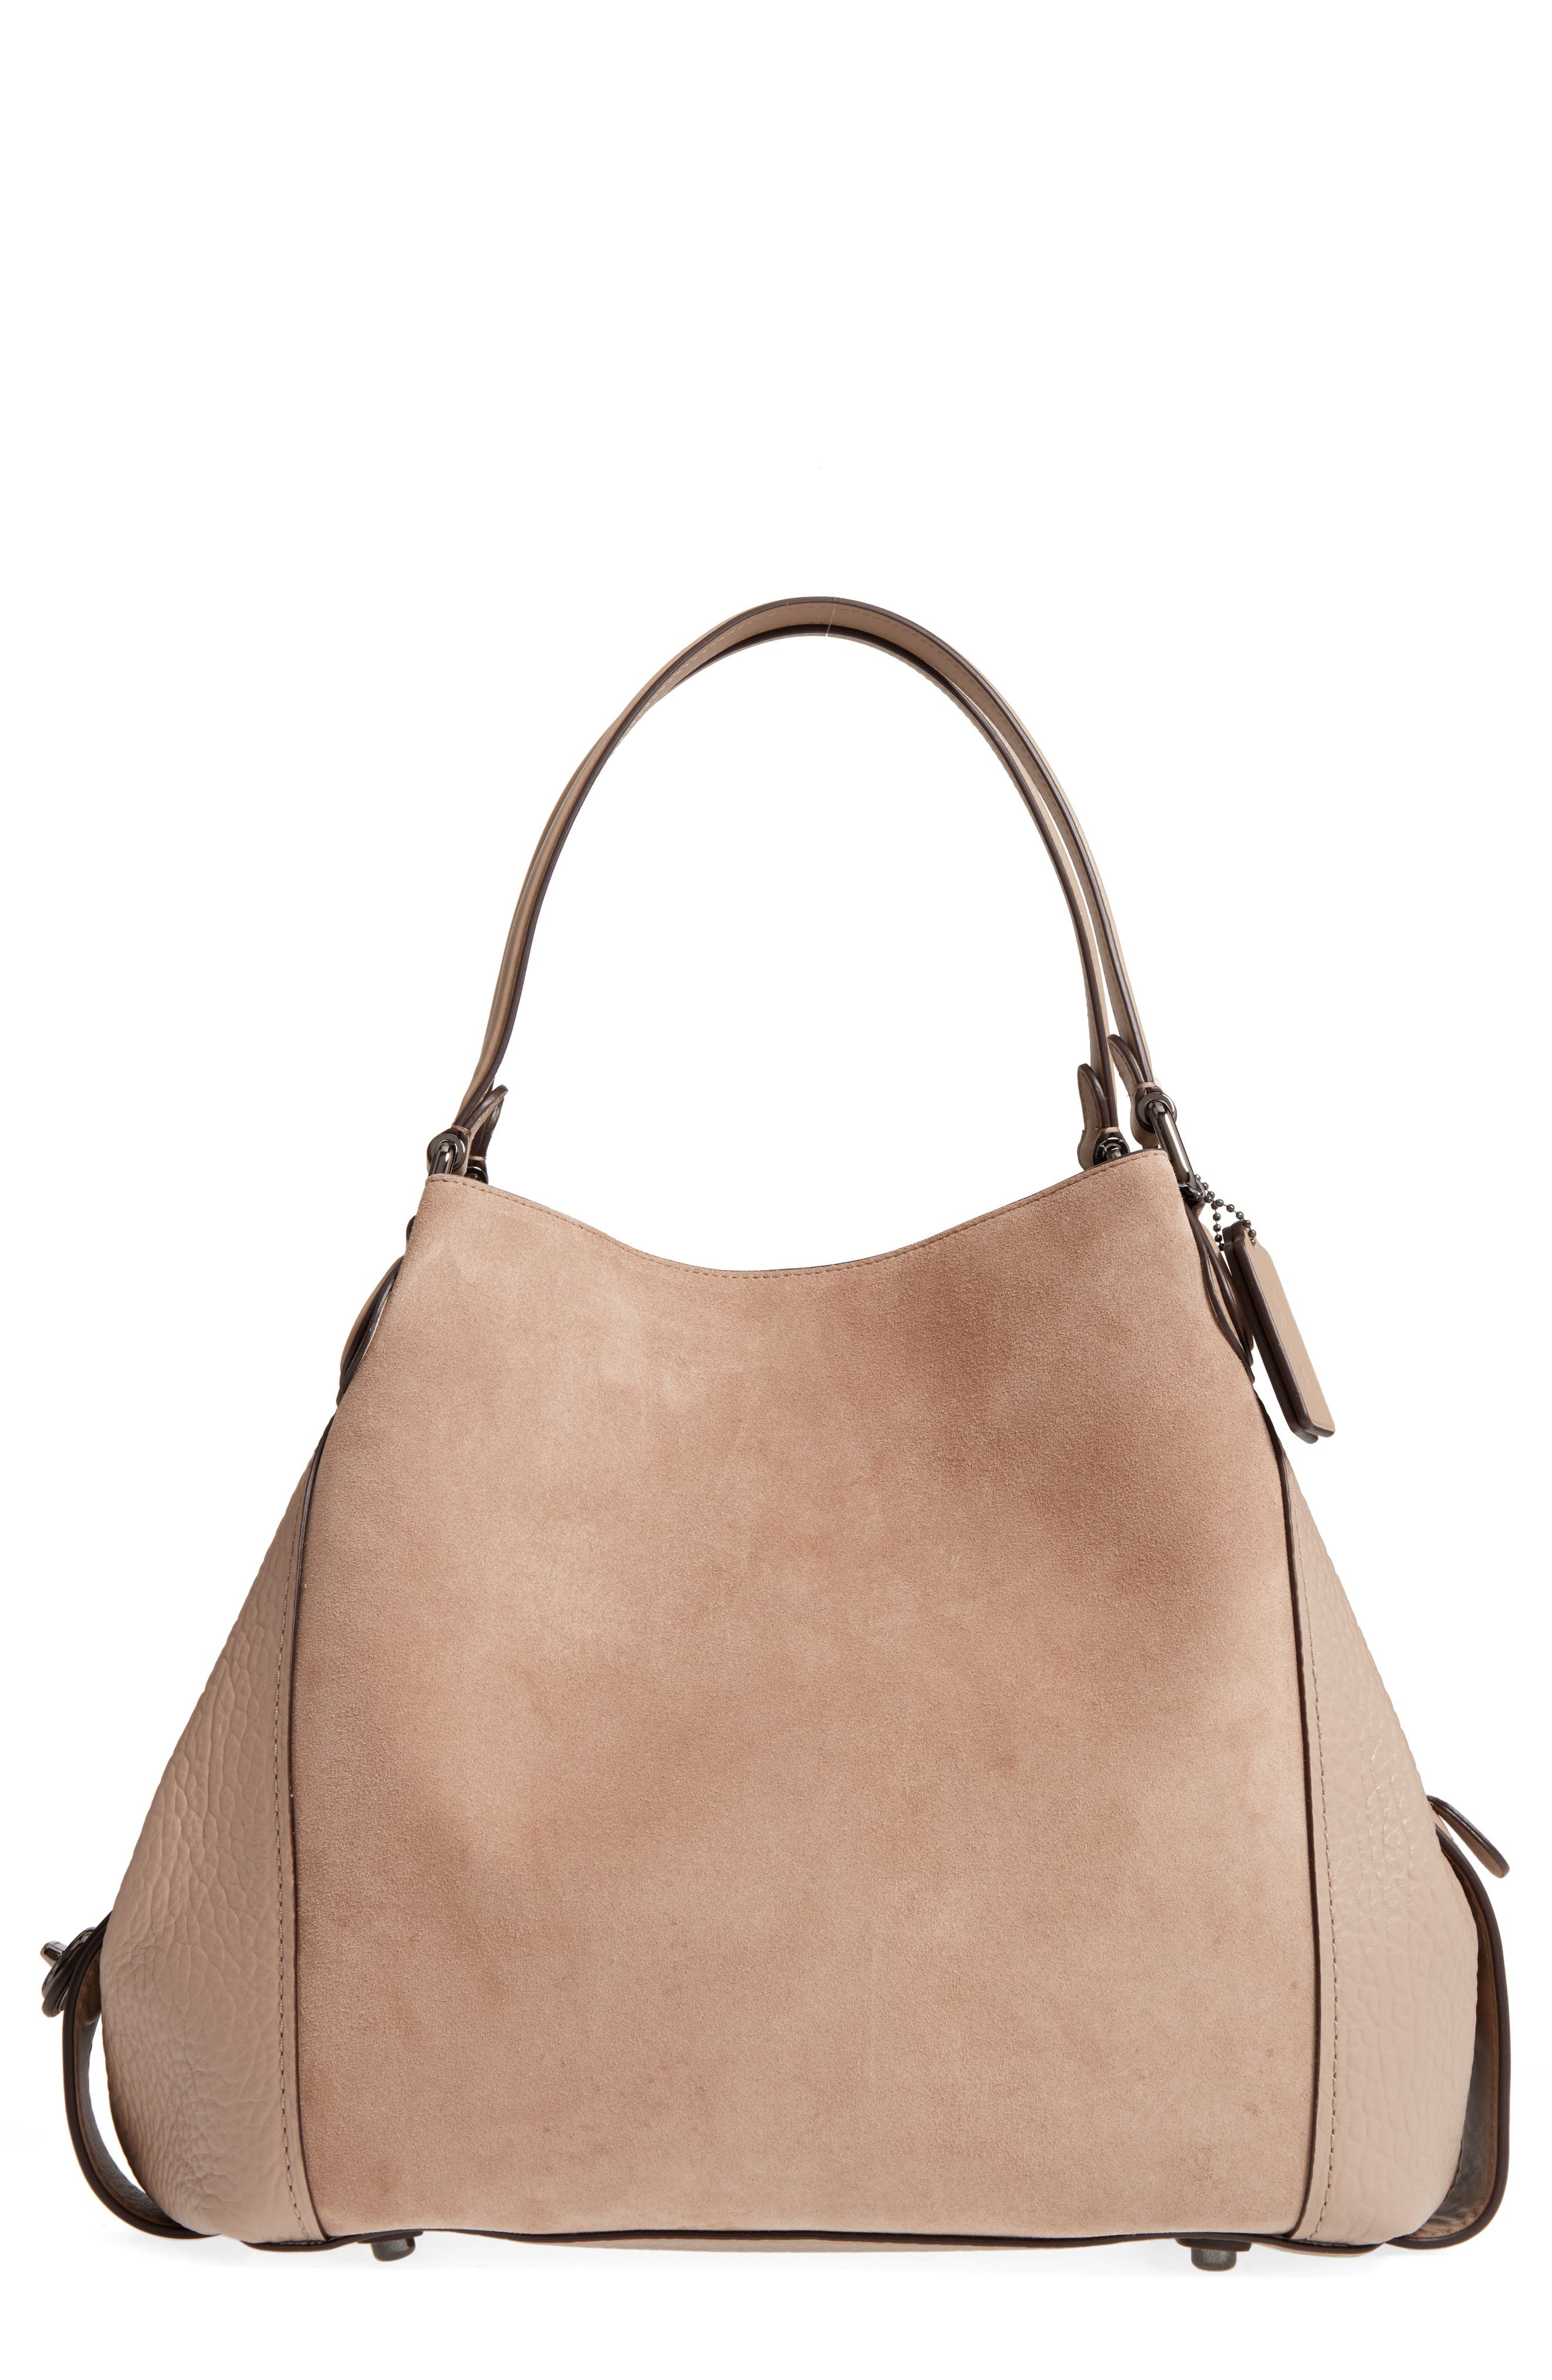 Edie Suede & Leather Shoulder Bag,                             Main thumbnail 1, color,                             253